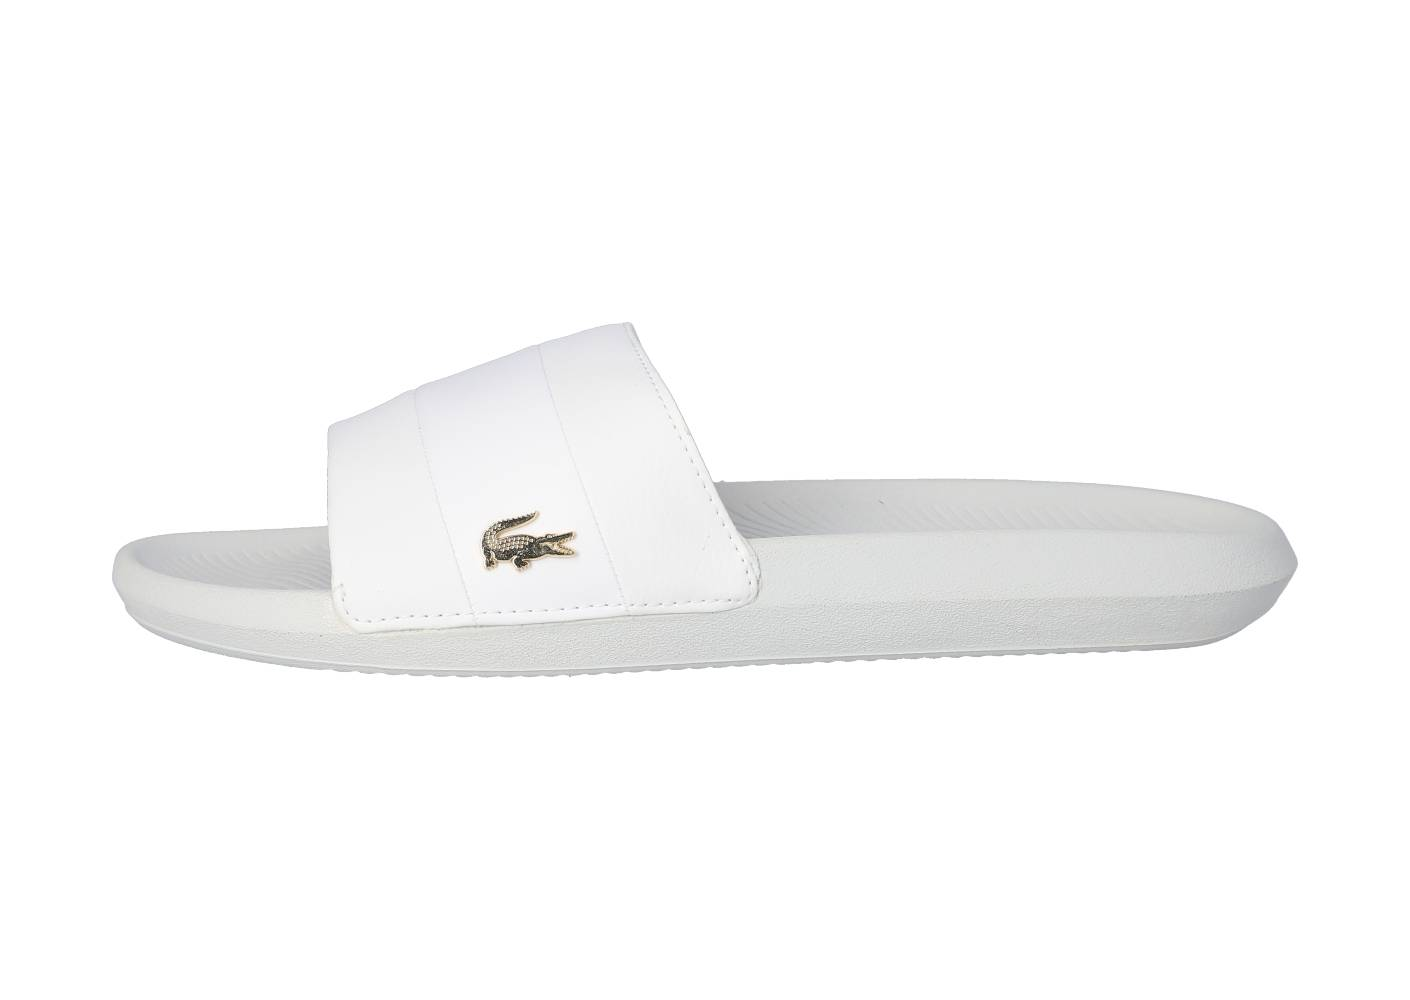 Lacoste Homme Sandales Croco Blanches 44 1/2